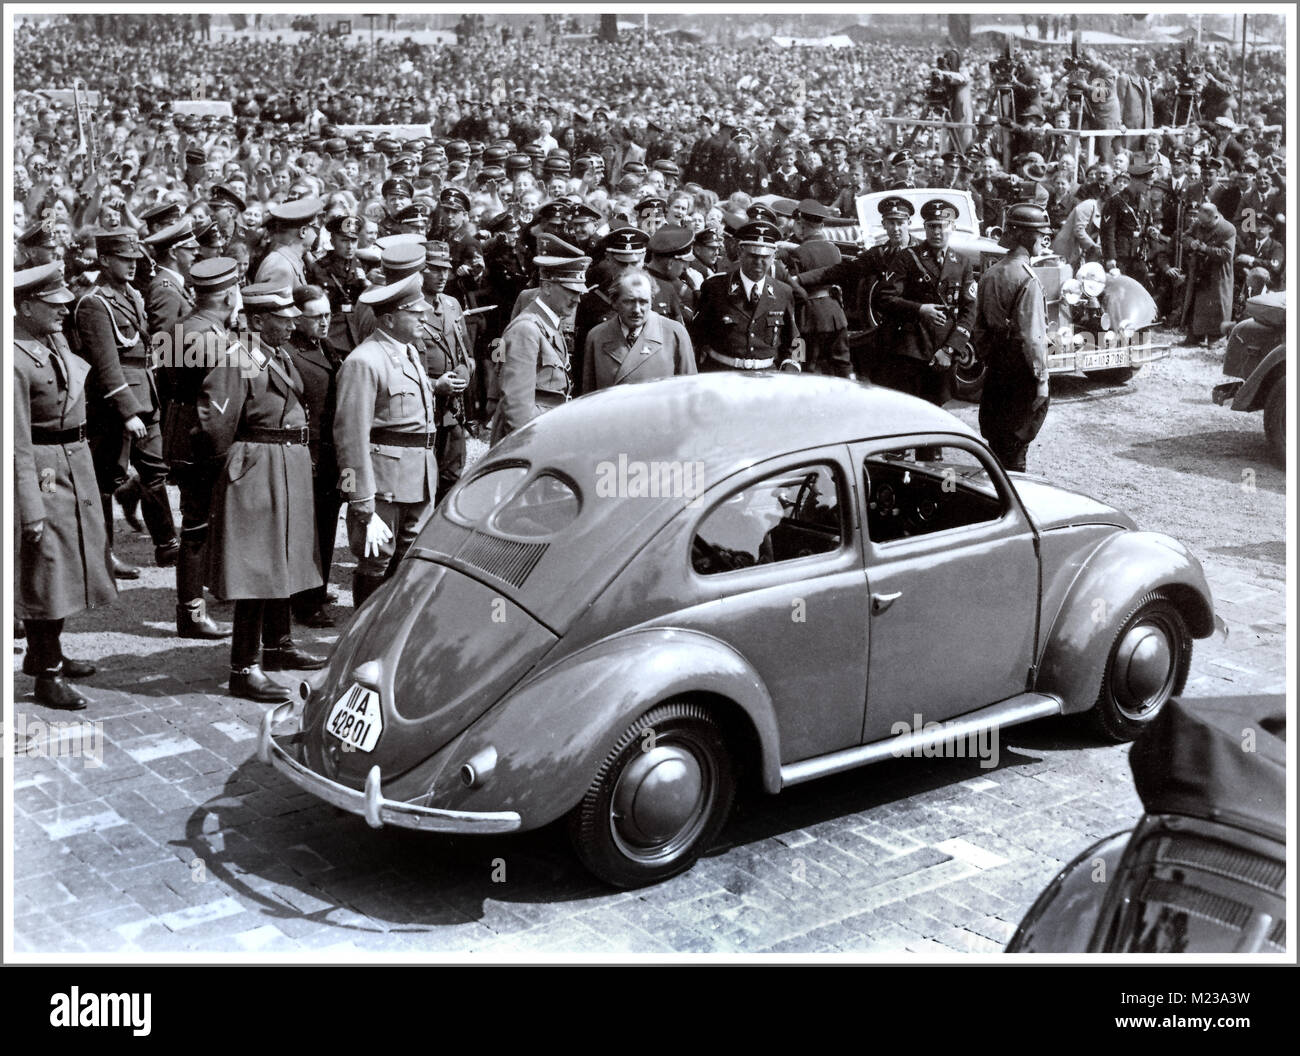 1930's ADOLF HITLER with DR. PORSCHE at the launch event of 'the people's car' KDF VW Volkswagen - Stock Image